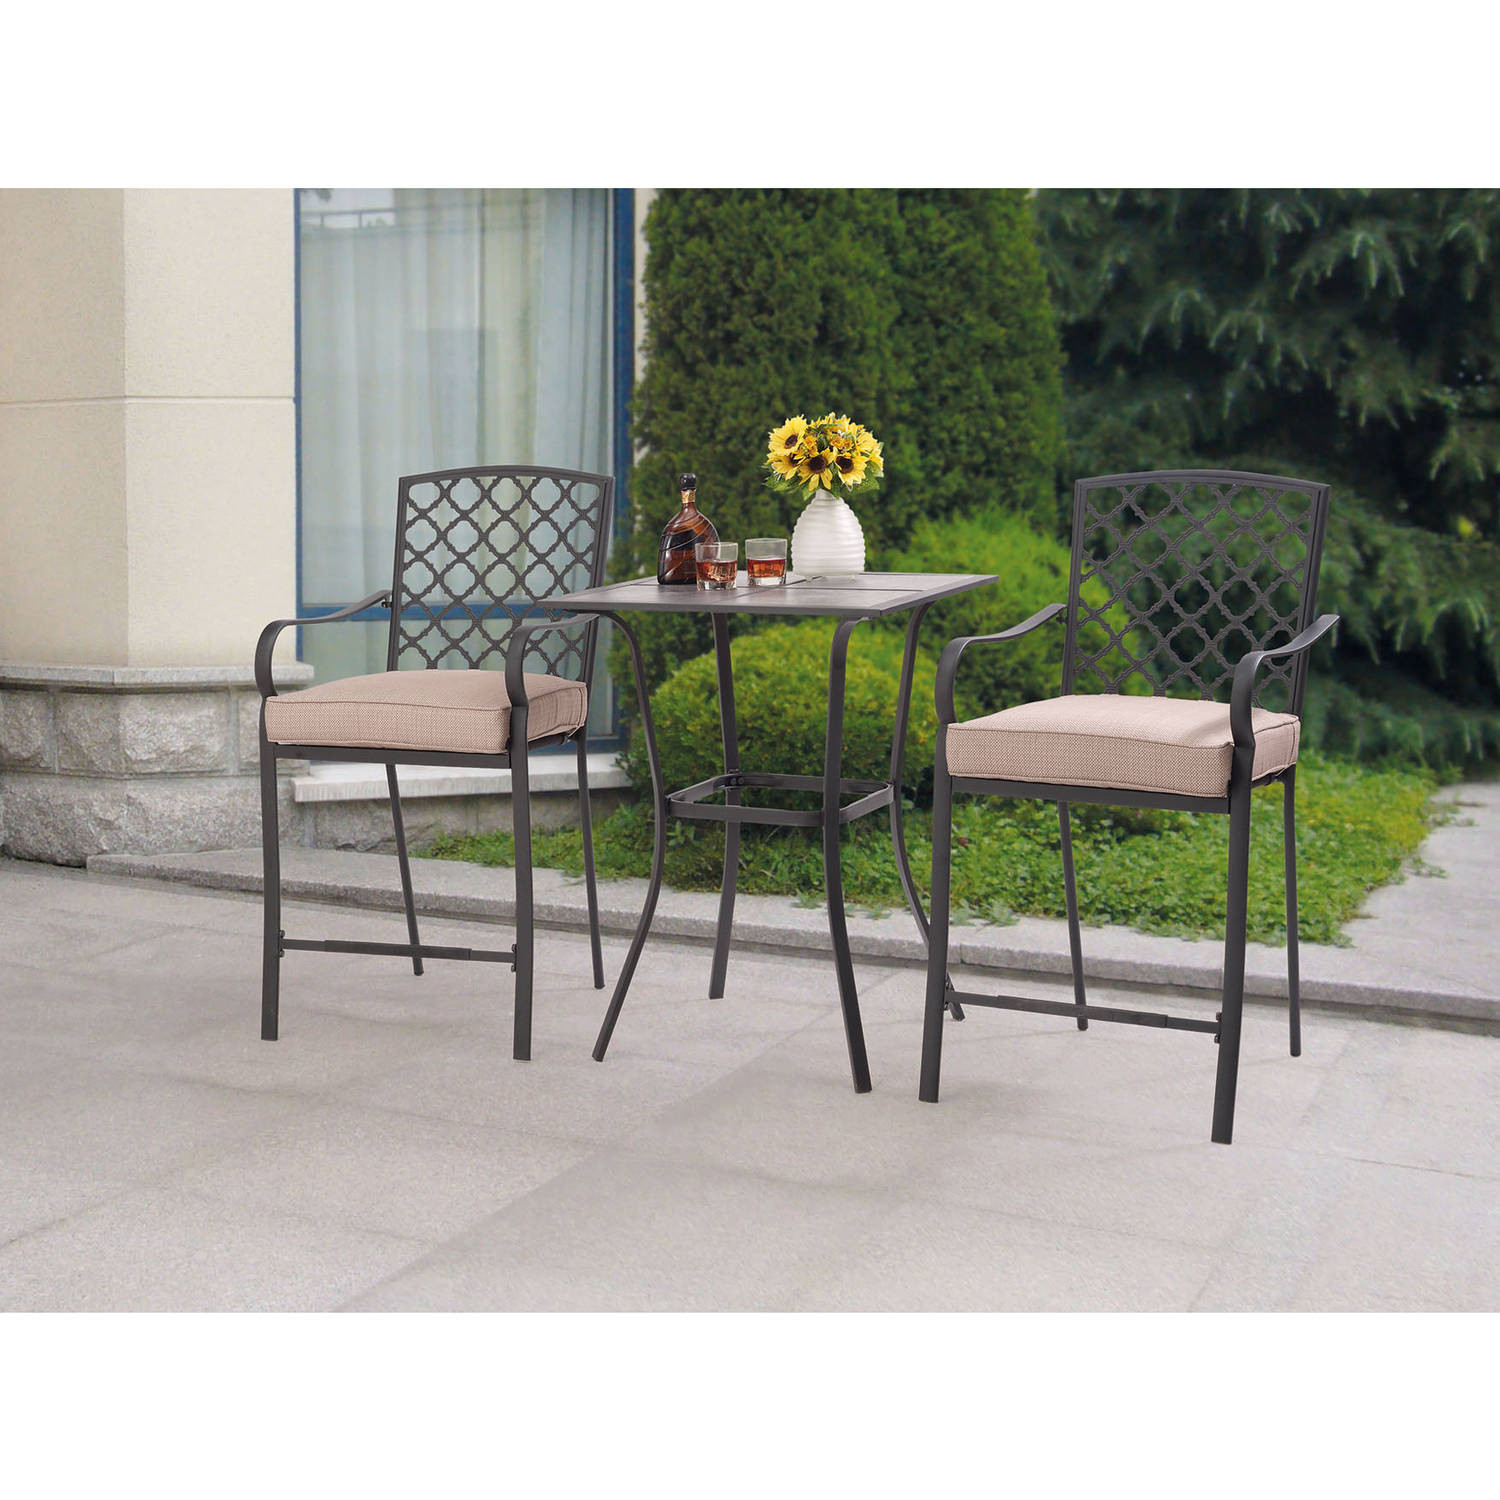 Best ideas about Patio Furniture Walmart . Save or Pin Best Choice Products Cast Aluminum Patio Bistro Furniture Now.